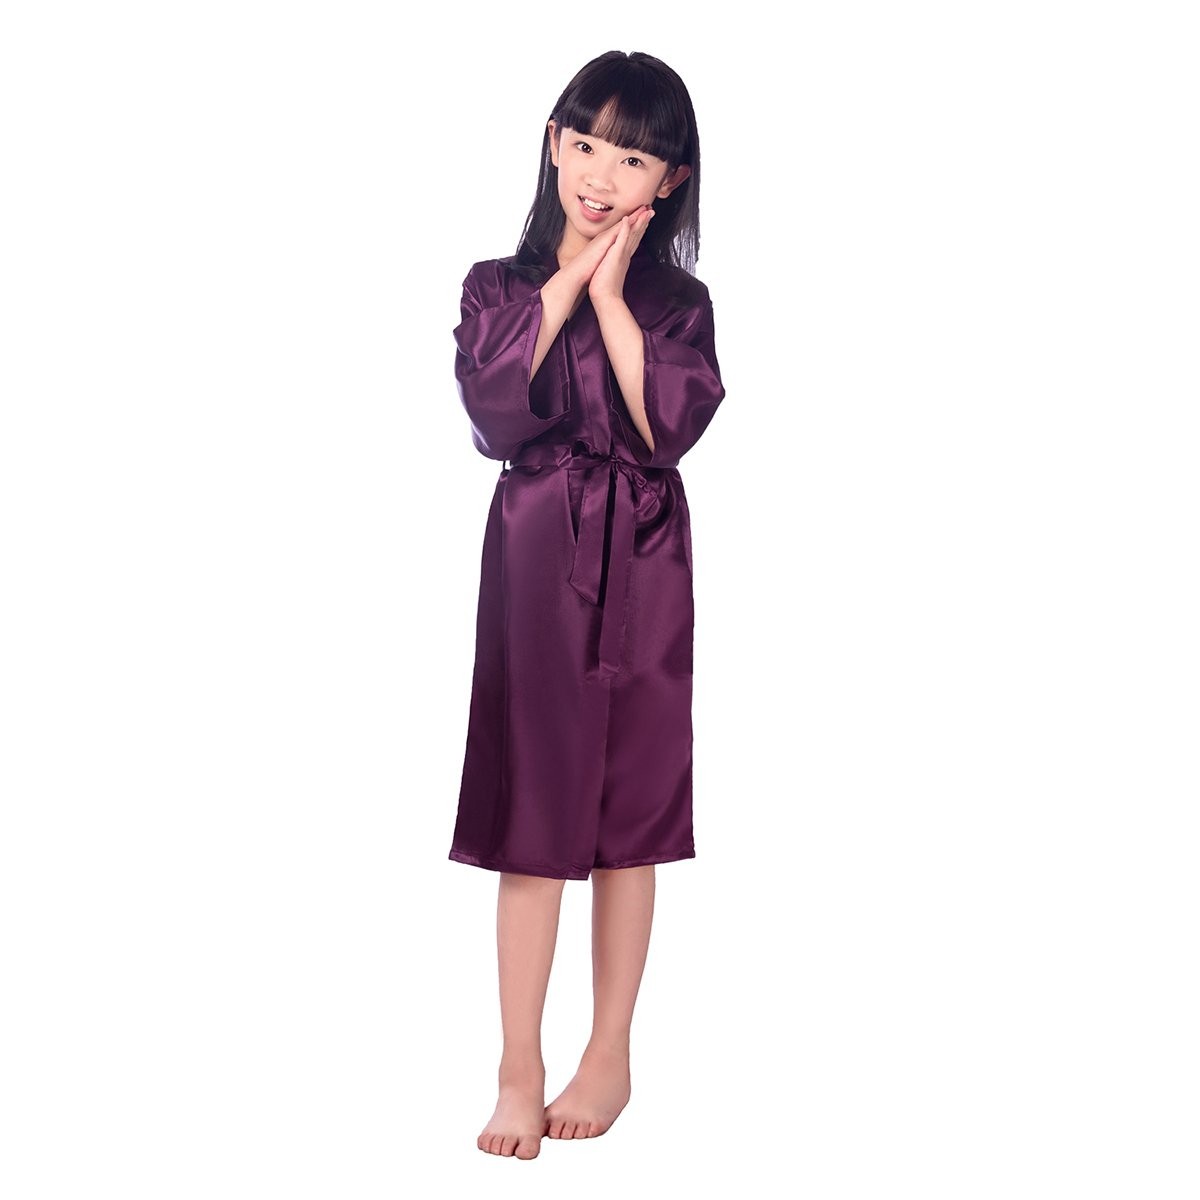 d6bea63f48 Amazon.com  TINKSKY Kids Satin Kimono Robe Bathrobe Nightgown For Spa Party  Wedding Birthday For 45-51 inches Tall Girl (Dark Purple)  Clothing